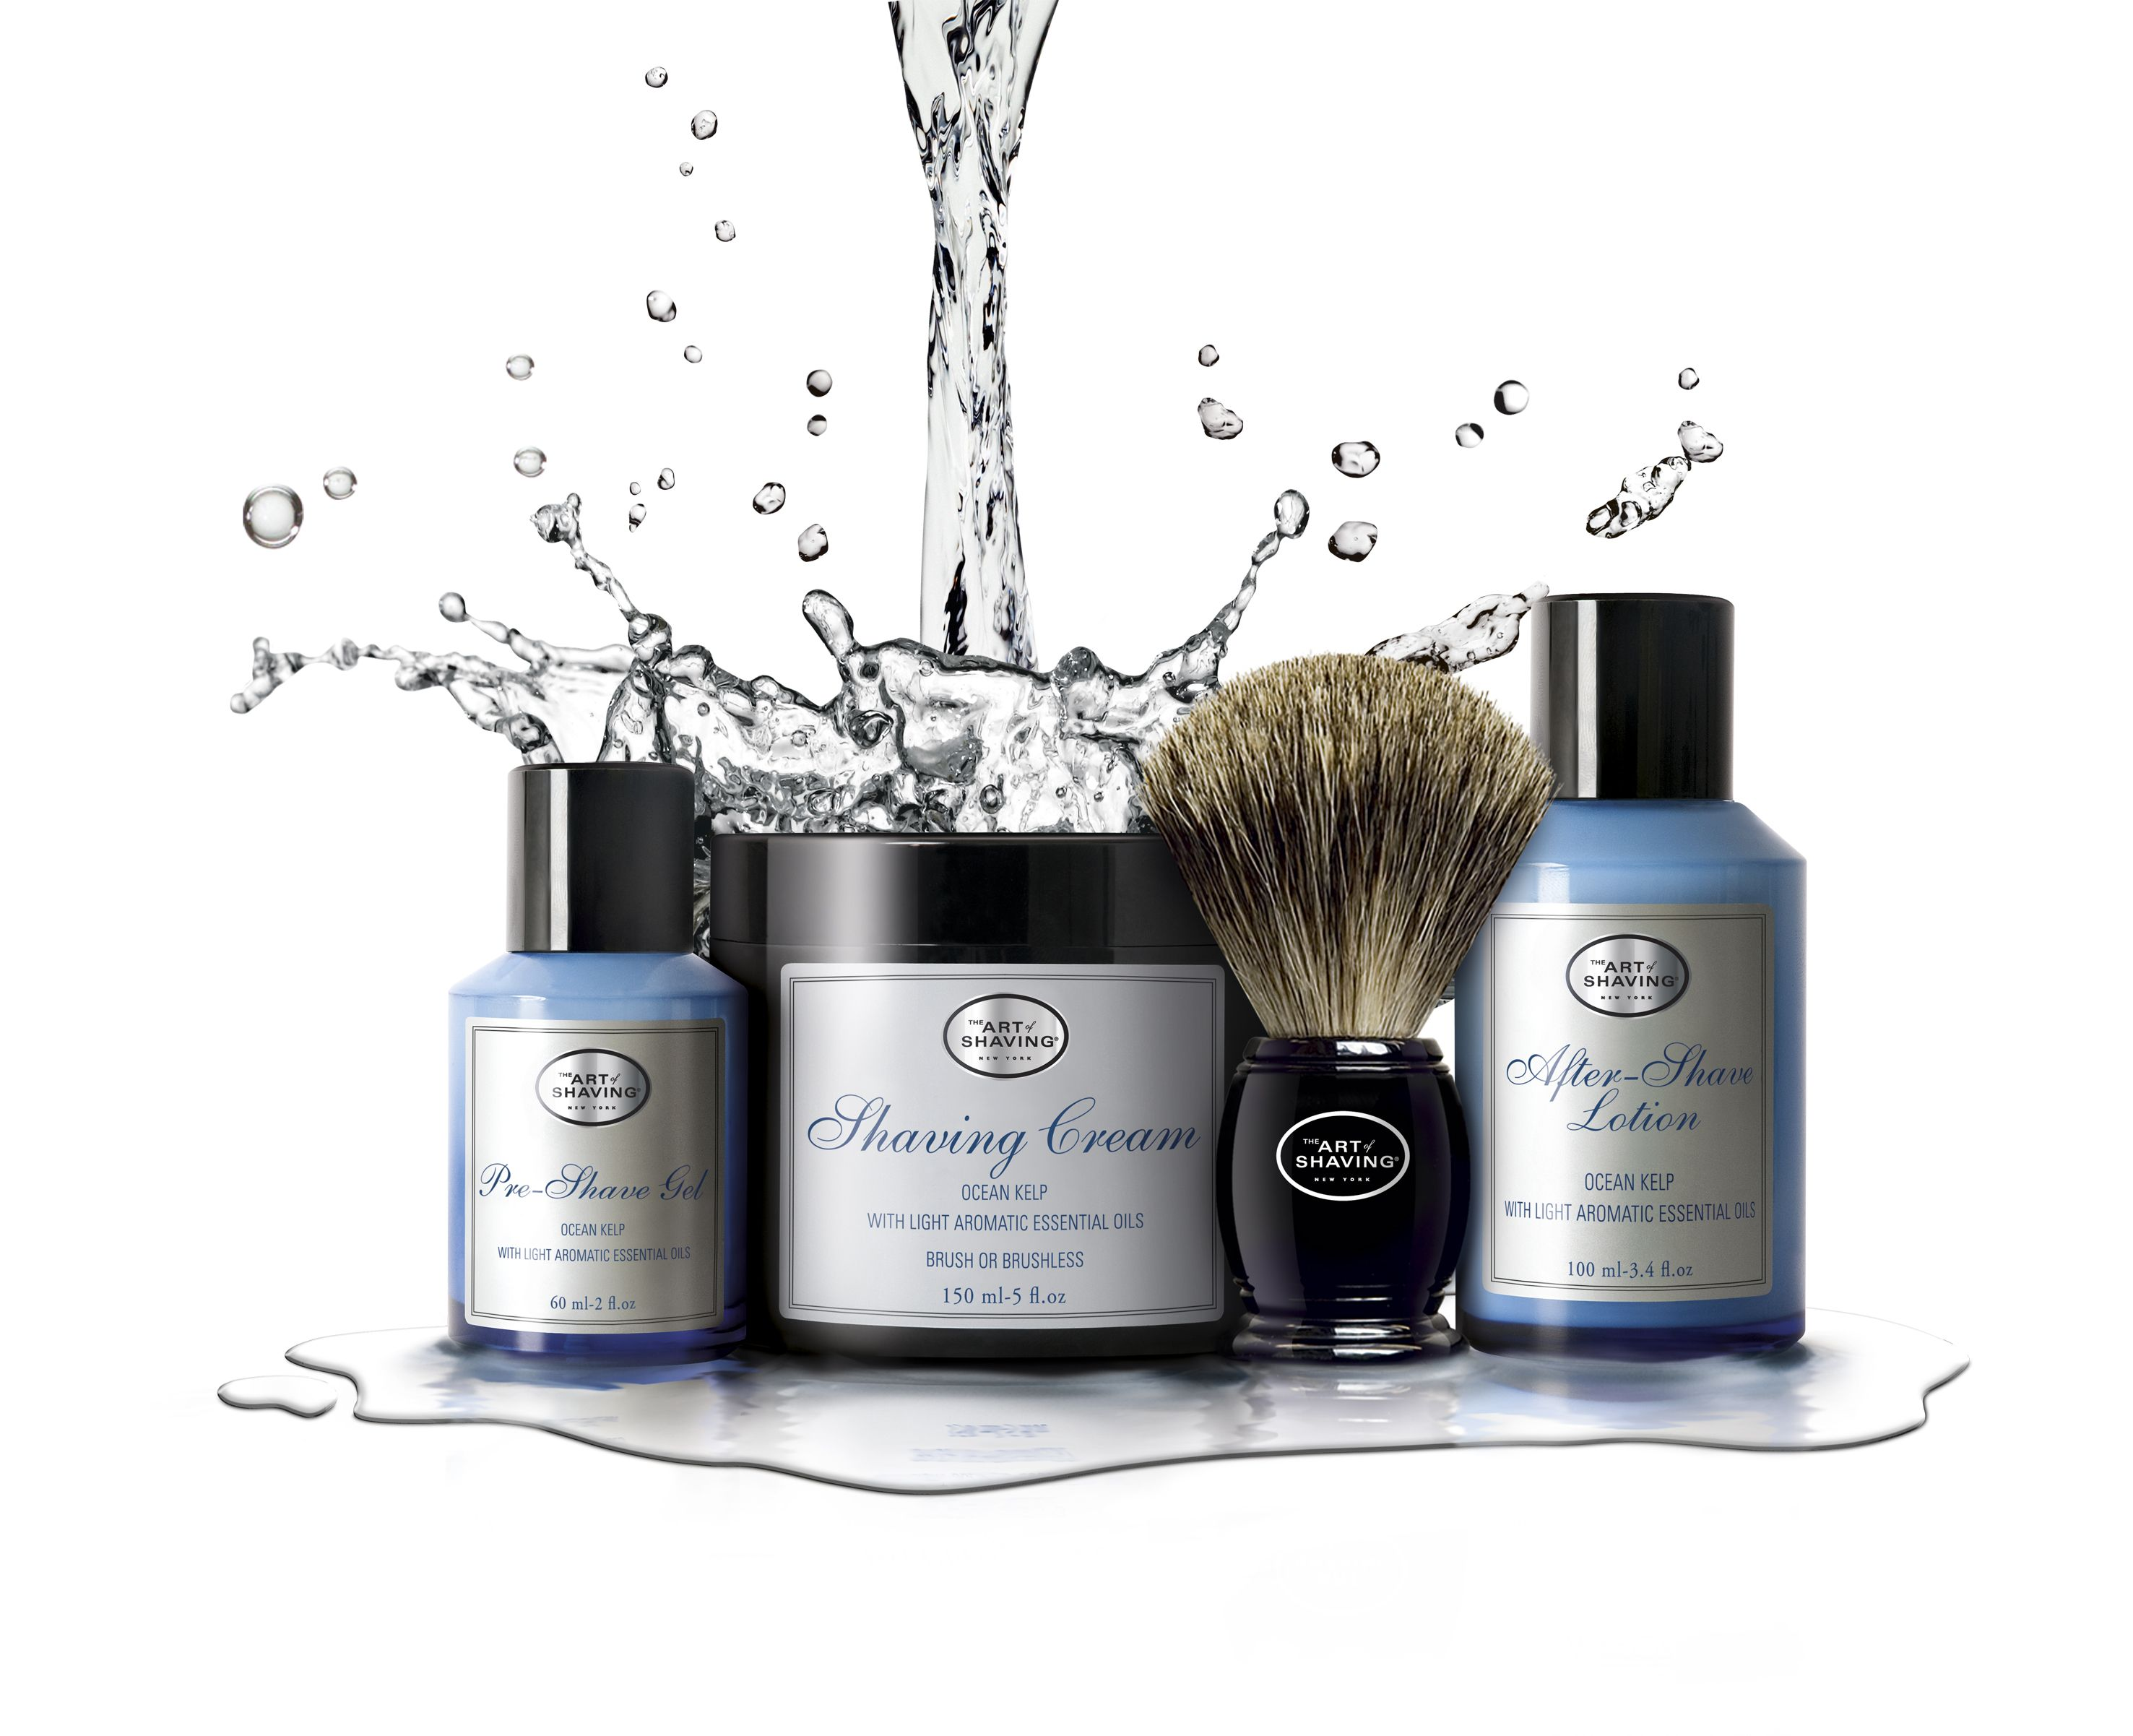 March Must Haves Unexpected Ingredients The Art Of Shaving Cream Art Shaving